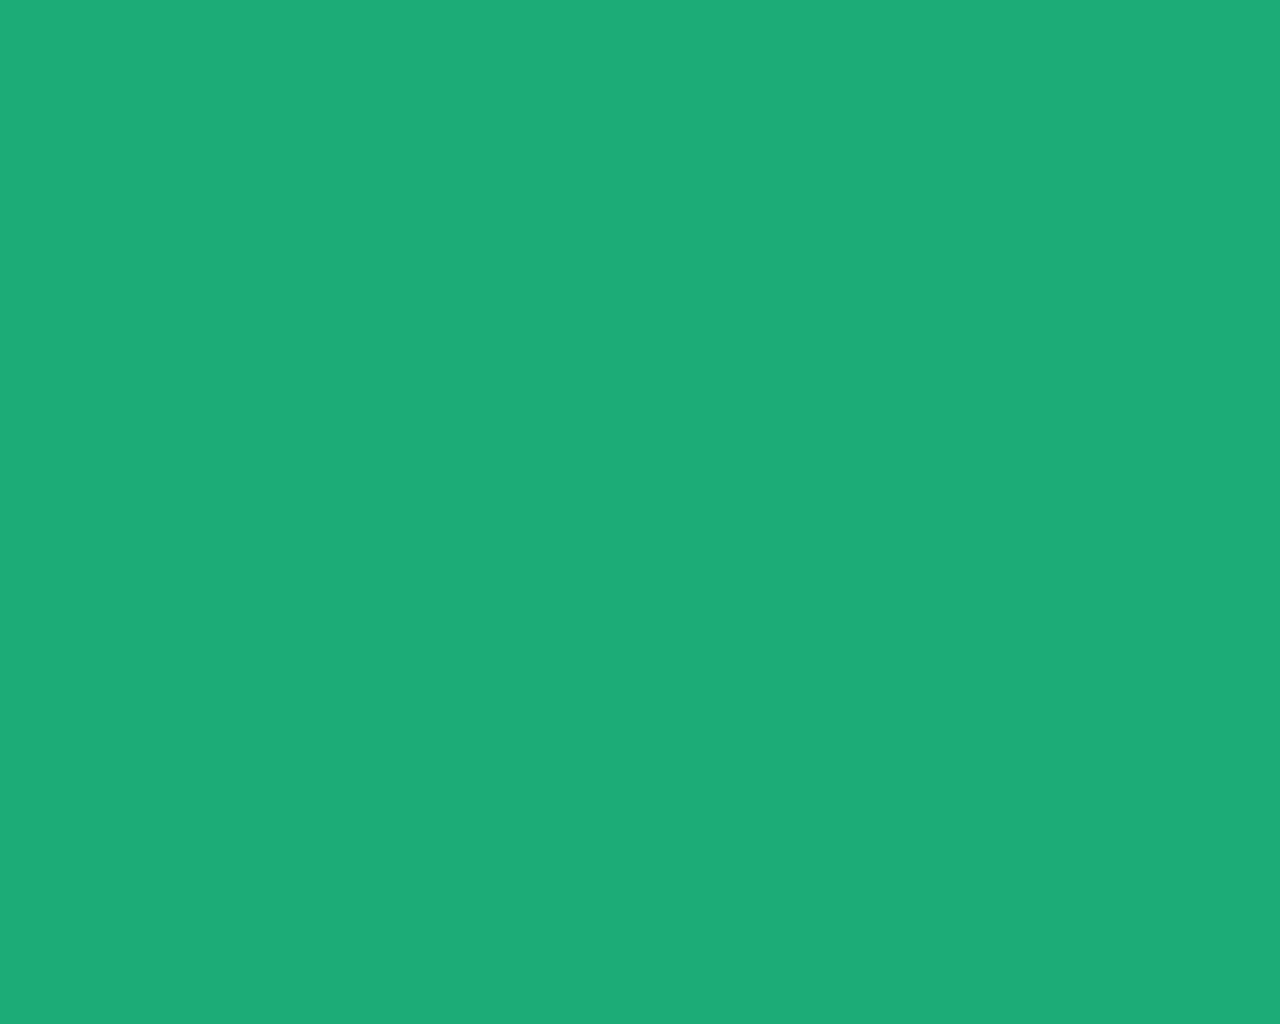 1280x1024 Green Crayola Solid Color Background